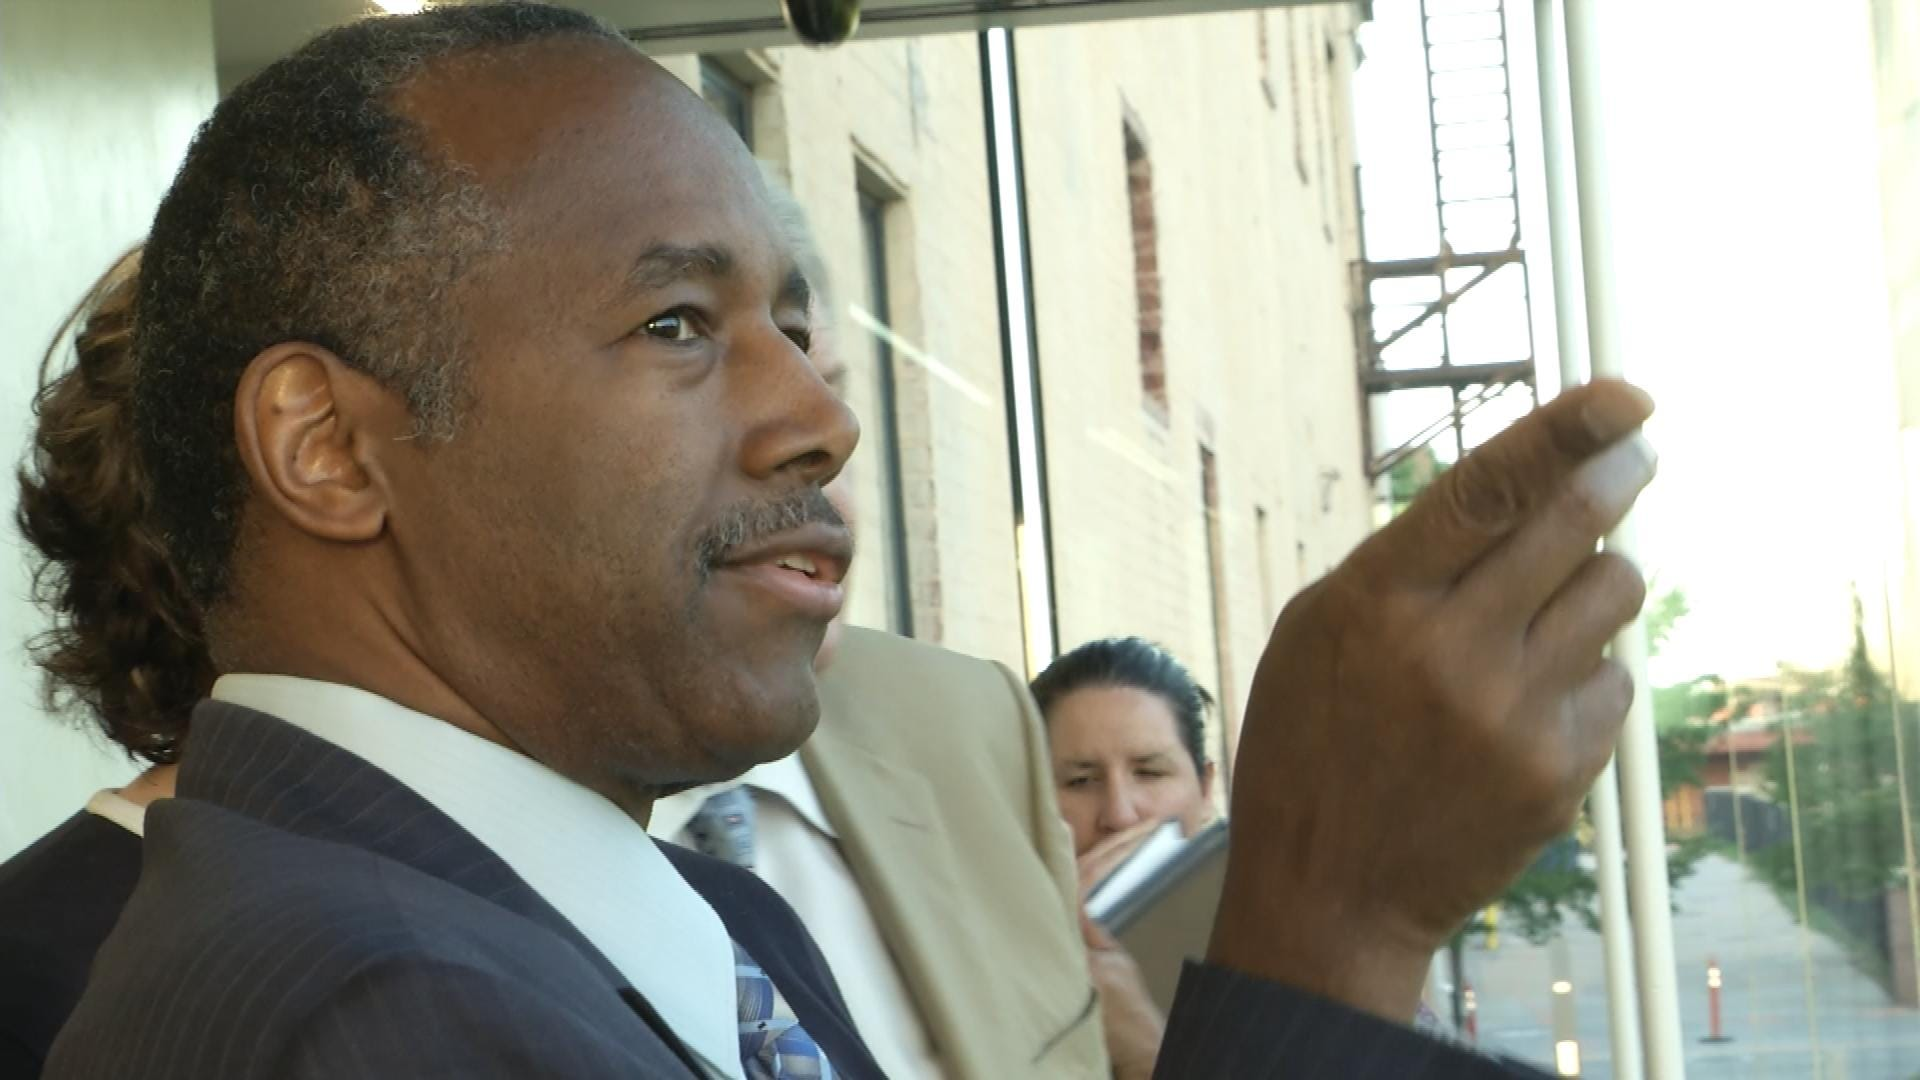 HUD Sec Carson To Speak At Remembrance Ceremony Today